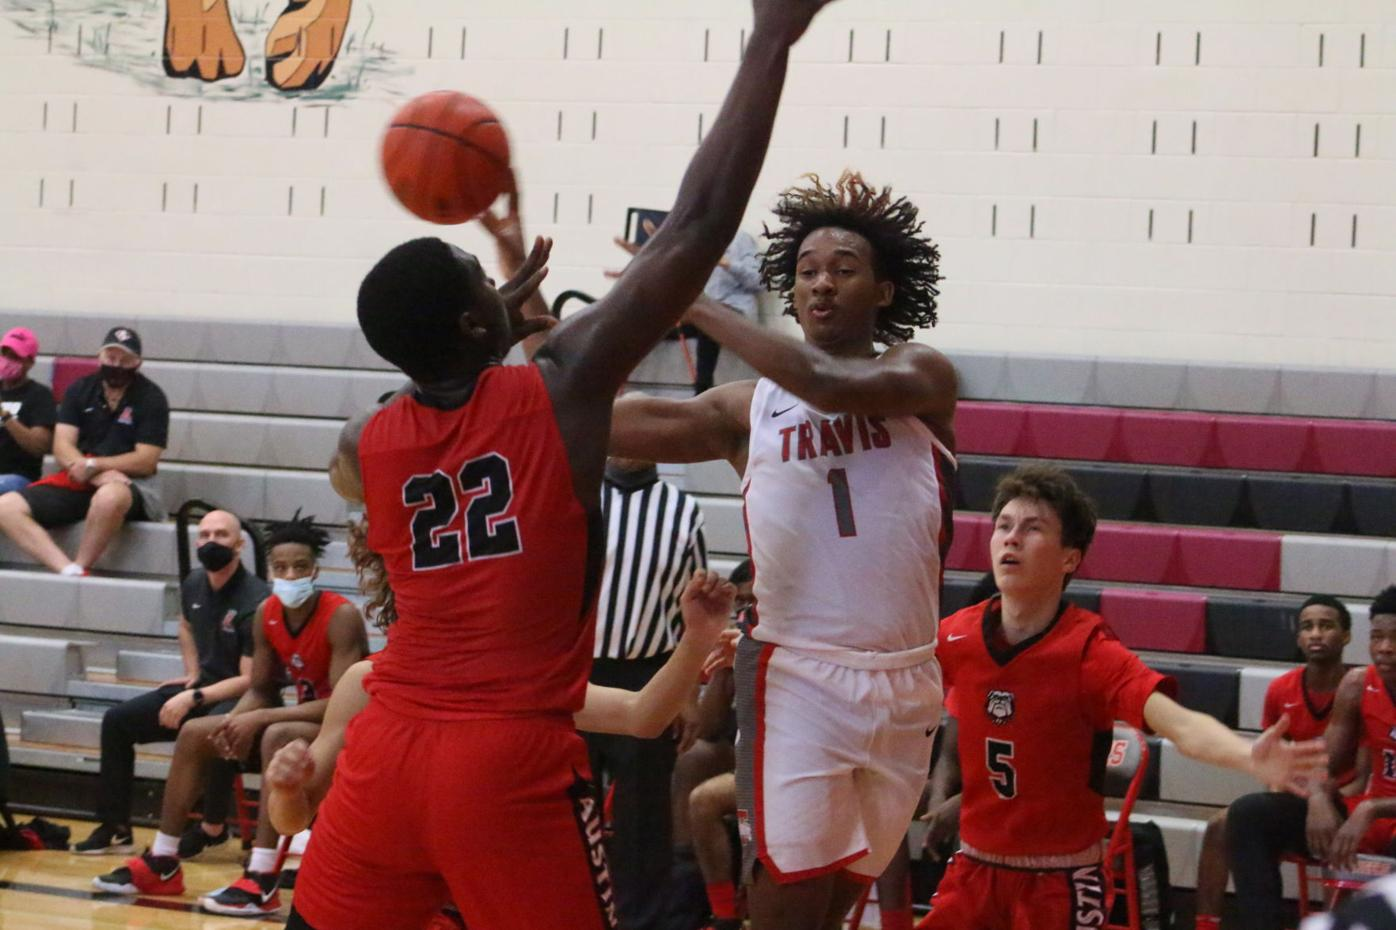 Tigers rout Bulldogs in district opener